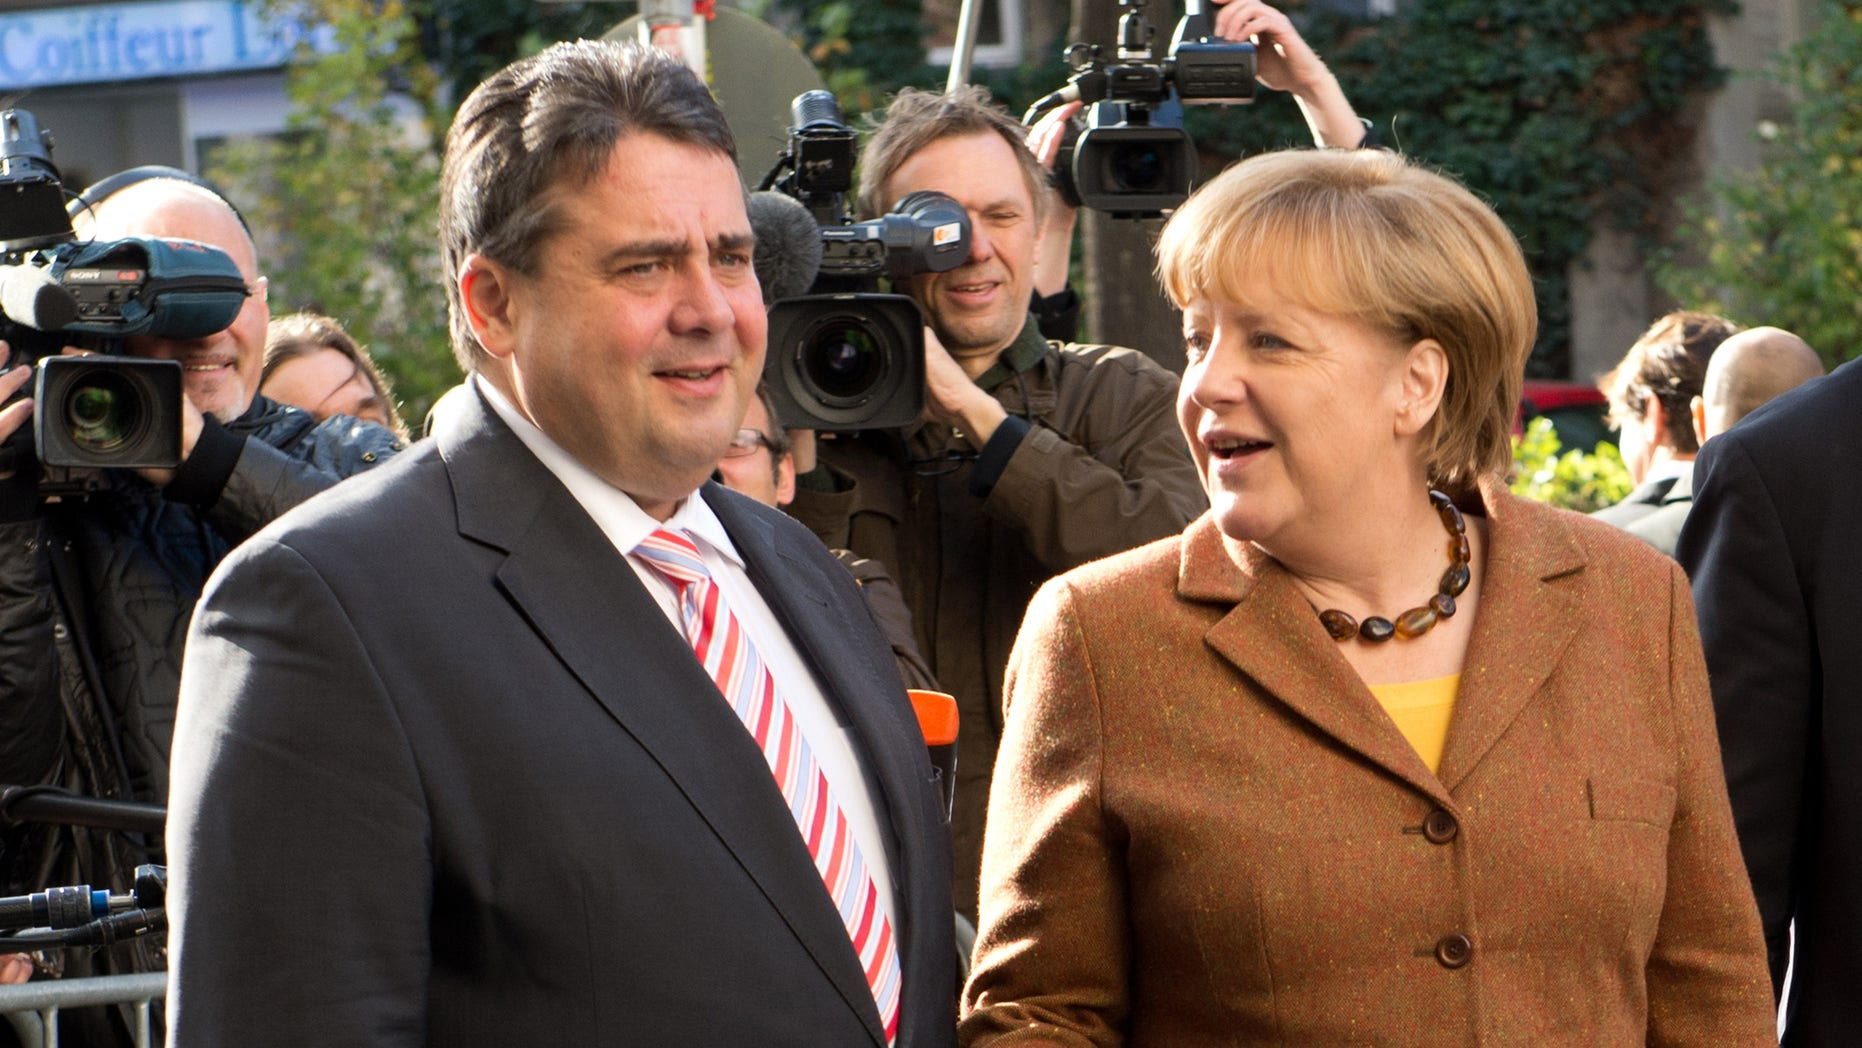 Social Democratic Party, SPD, chairman Sigmar Gabriel, left, welcomes Angela Merkel, right, German Chancellor and chairwoman of the Christian Democratic Union, CDU, center, at the Social Democrat's headquarters for coalition talks in Berlin, Wednesday, Oct. 30, 2013. Following the Sept. 22 national elections Chancellor Merkel and her Christian parties' bloc are negotiating the second week on forming a coalition with the Social Democratic Party. (AP Photo/dpa, Rainer Jensen)